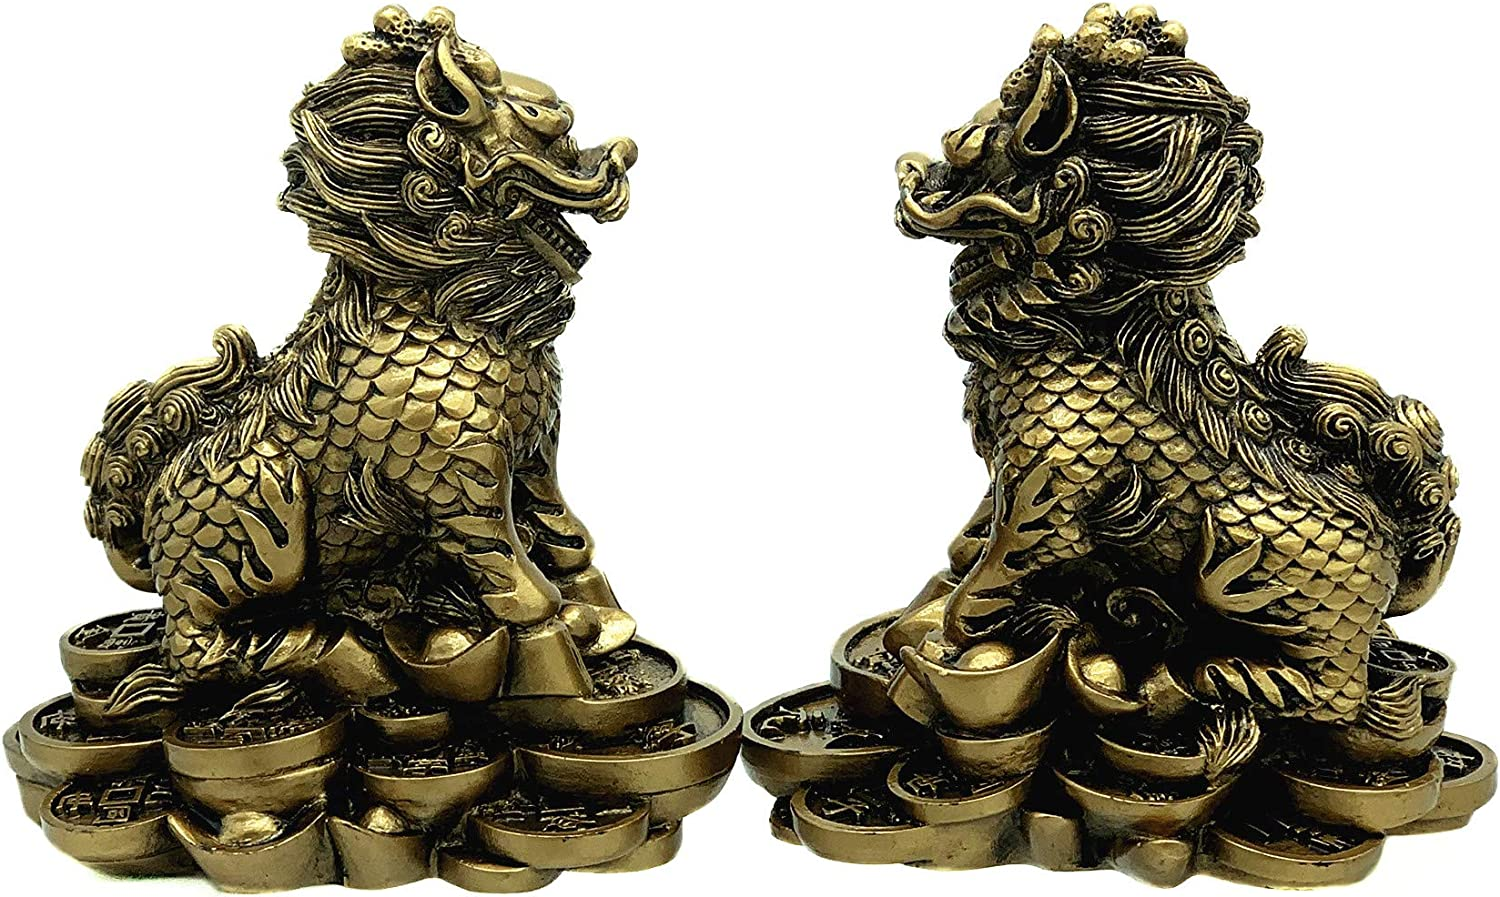 Chinese 5 brass ancient coins lucky wealth health Feng Shui protection charm EJB